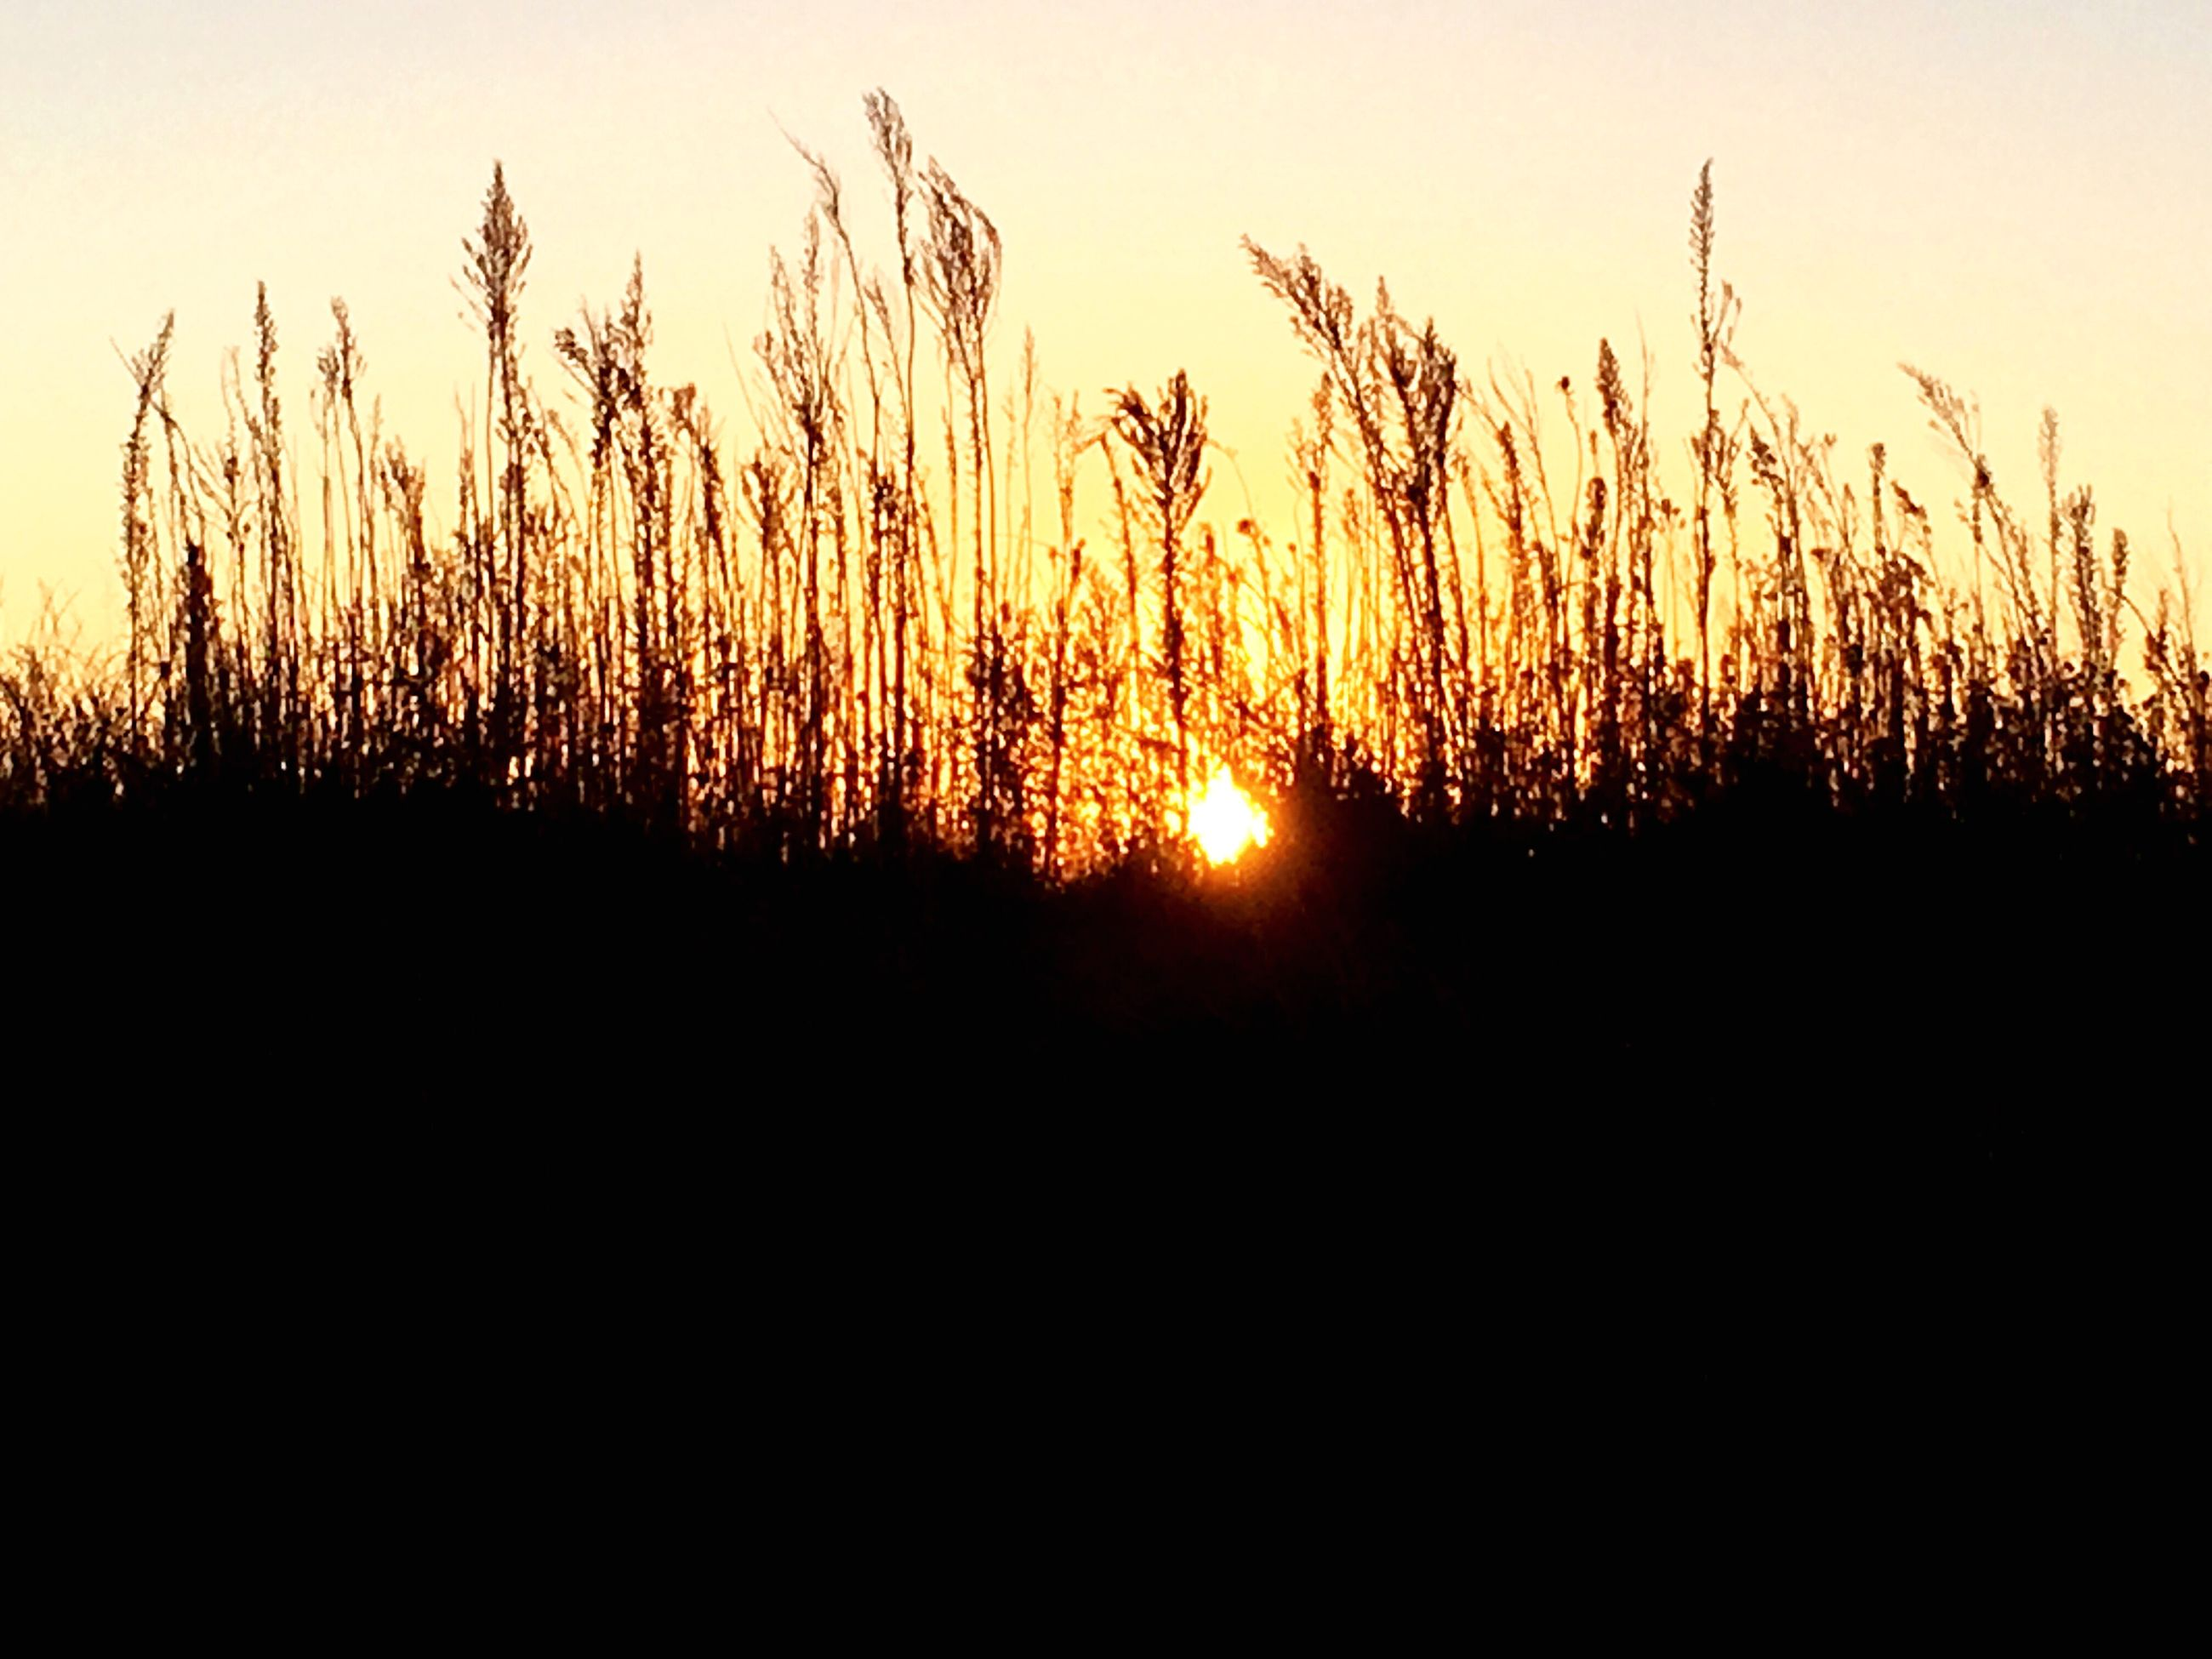 sunset, sun, grass, silhouette, tranquility, tranquil scene, scenics, sunlight, plant, beauty in nature, nature, reed - grass family, growth, back lit, non-urban scene, outdoors, uncultivated, sky, tall - high, sunbeam, majestic, tall grass, vibrant color, wilderness, remote